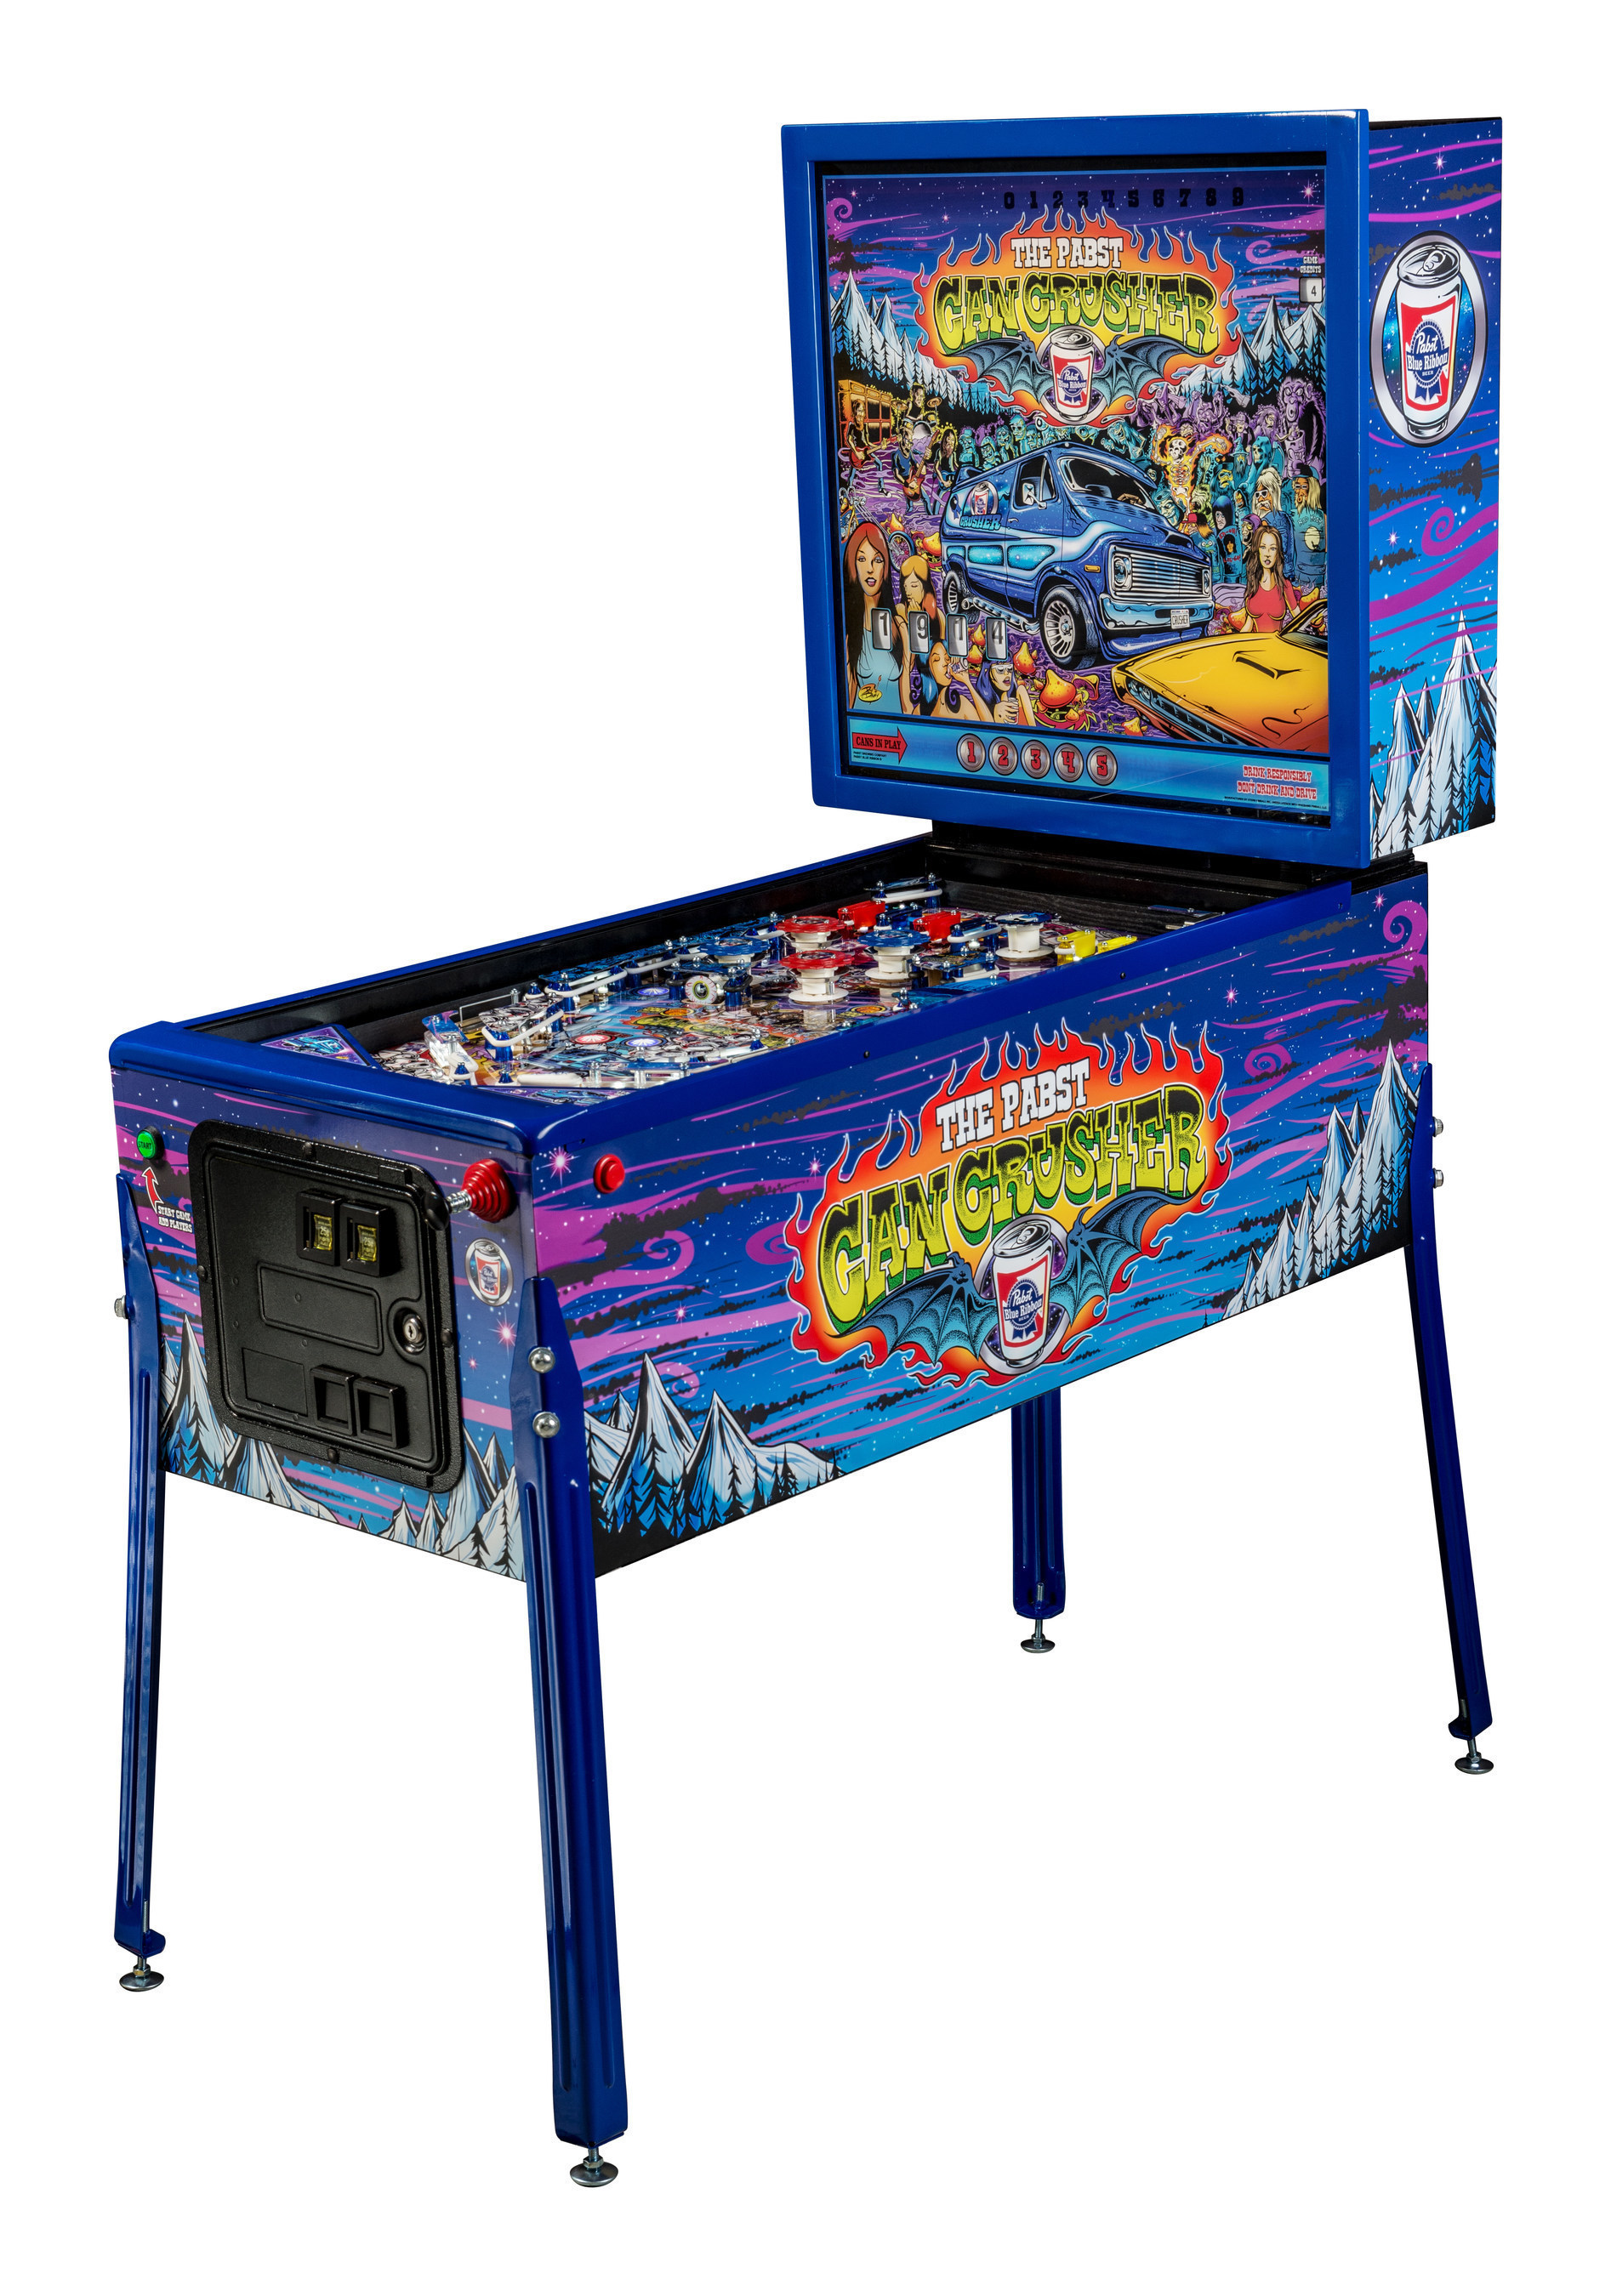 Stern Pinball, Leading Pinball Manufacturer, Introduces PBR-Themed Machine to Lineup